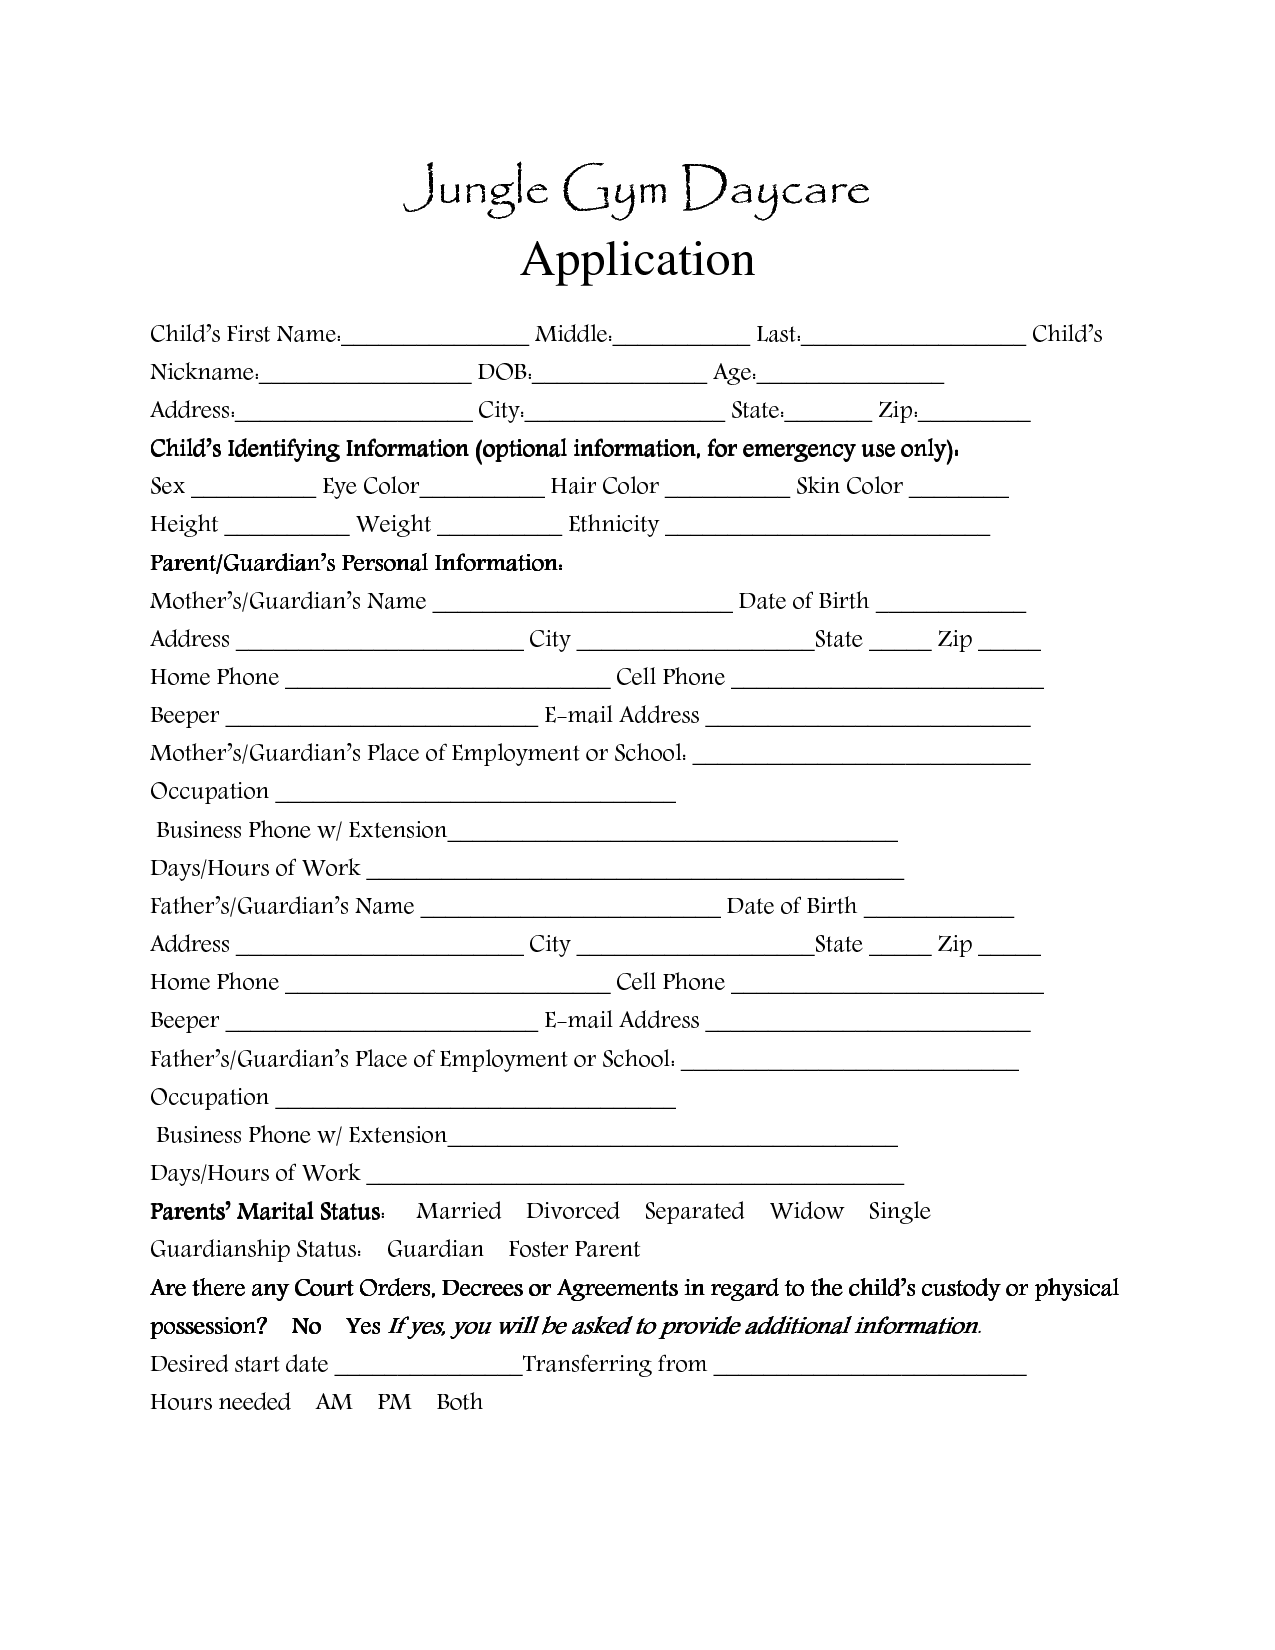 State Of Missouri Daycare Enrollment Forms